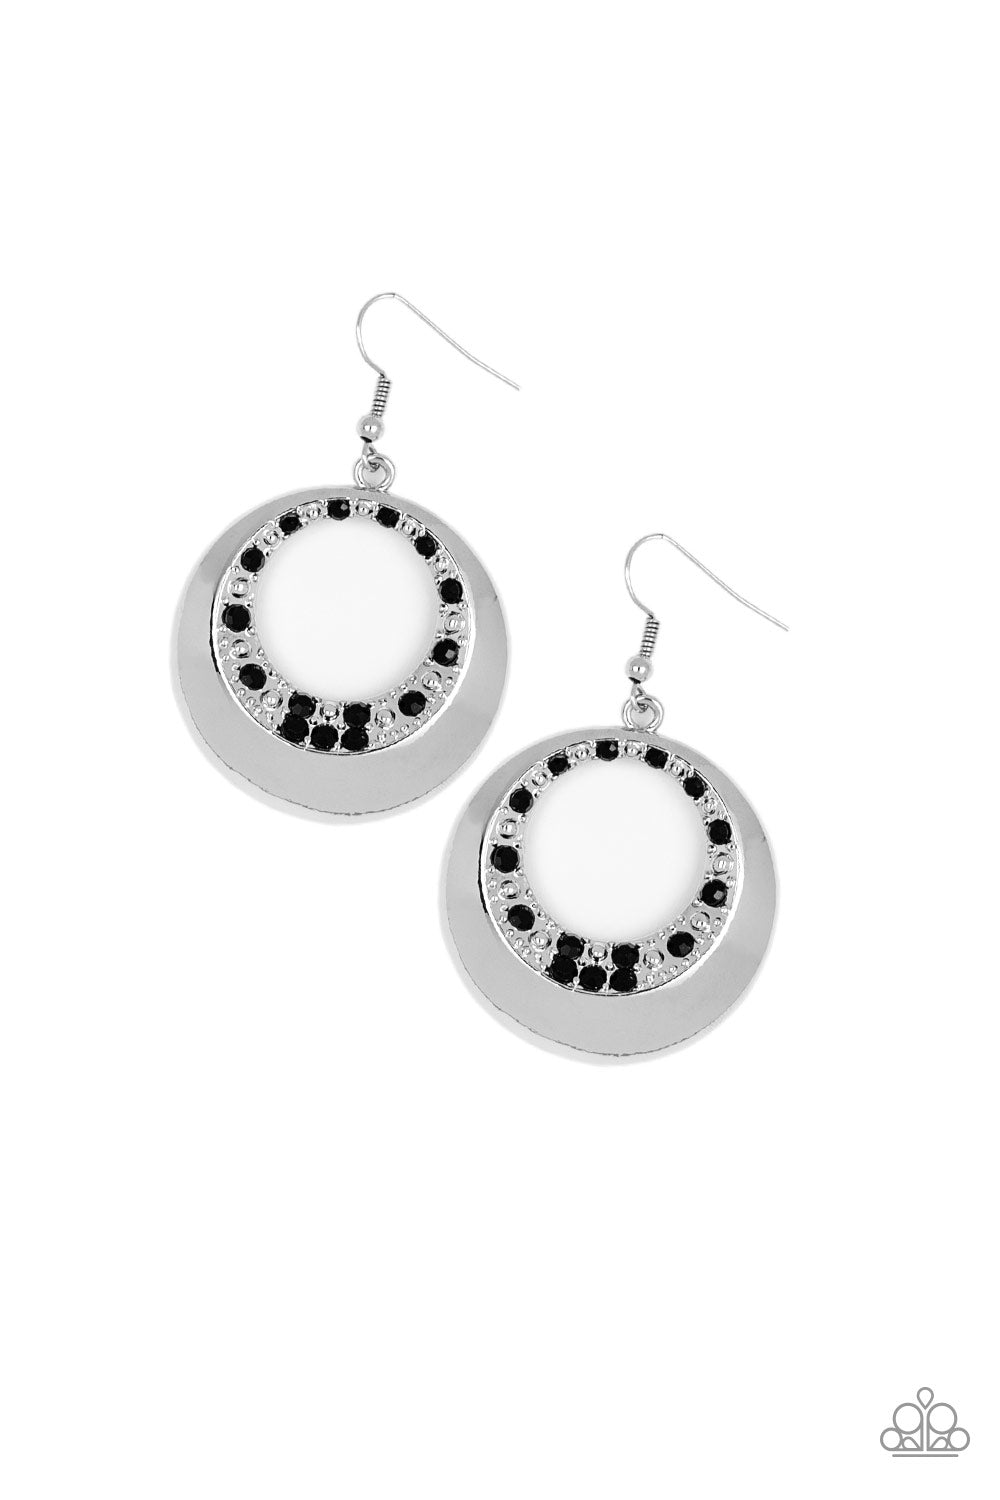 Paparazzi Earrings - Ringed In Refinement - Black